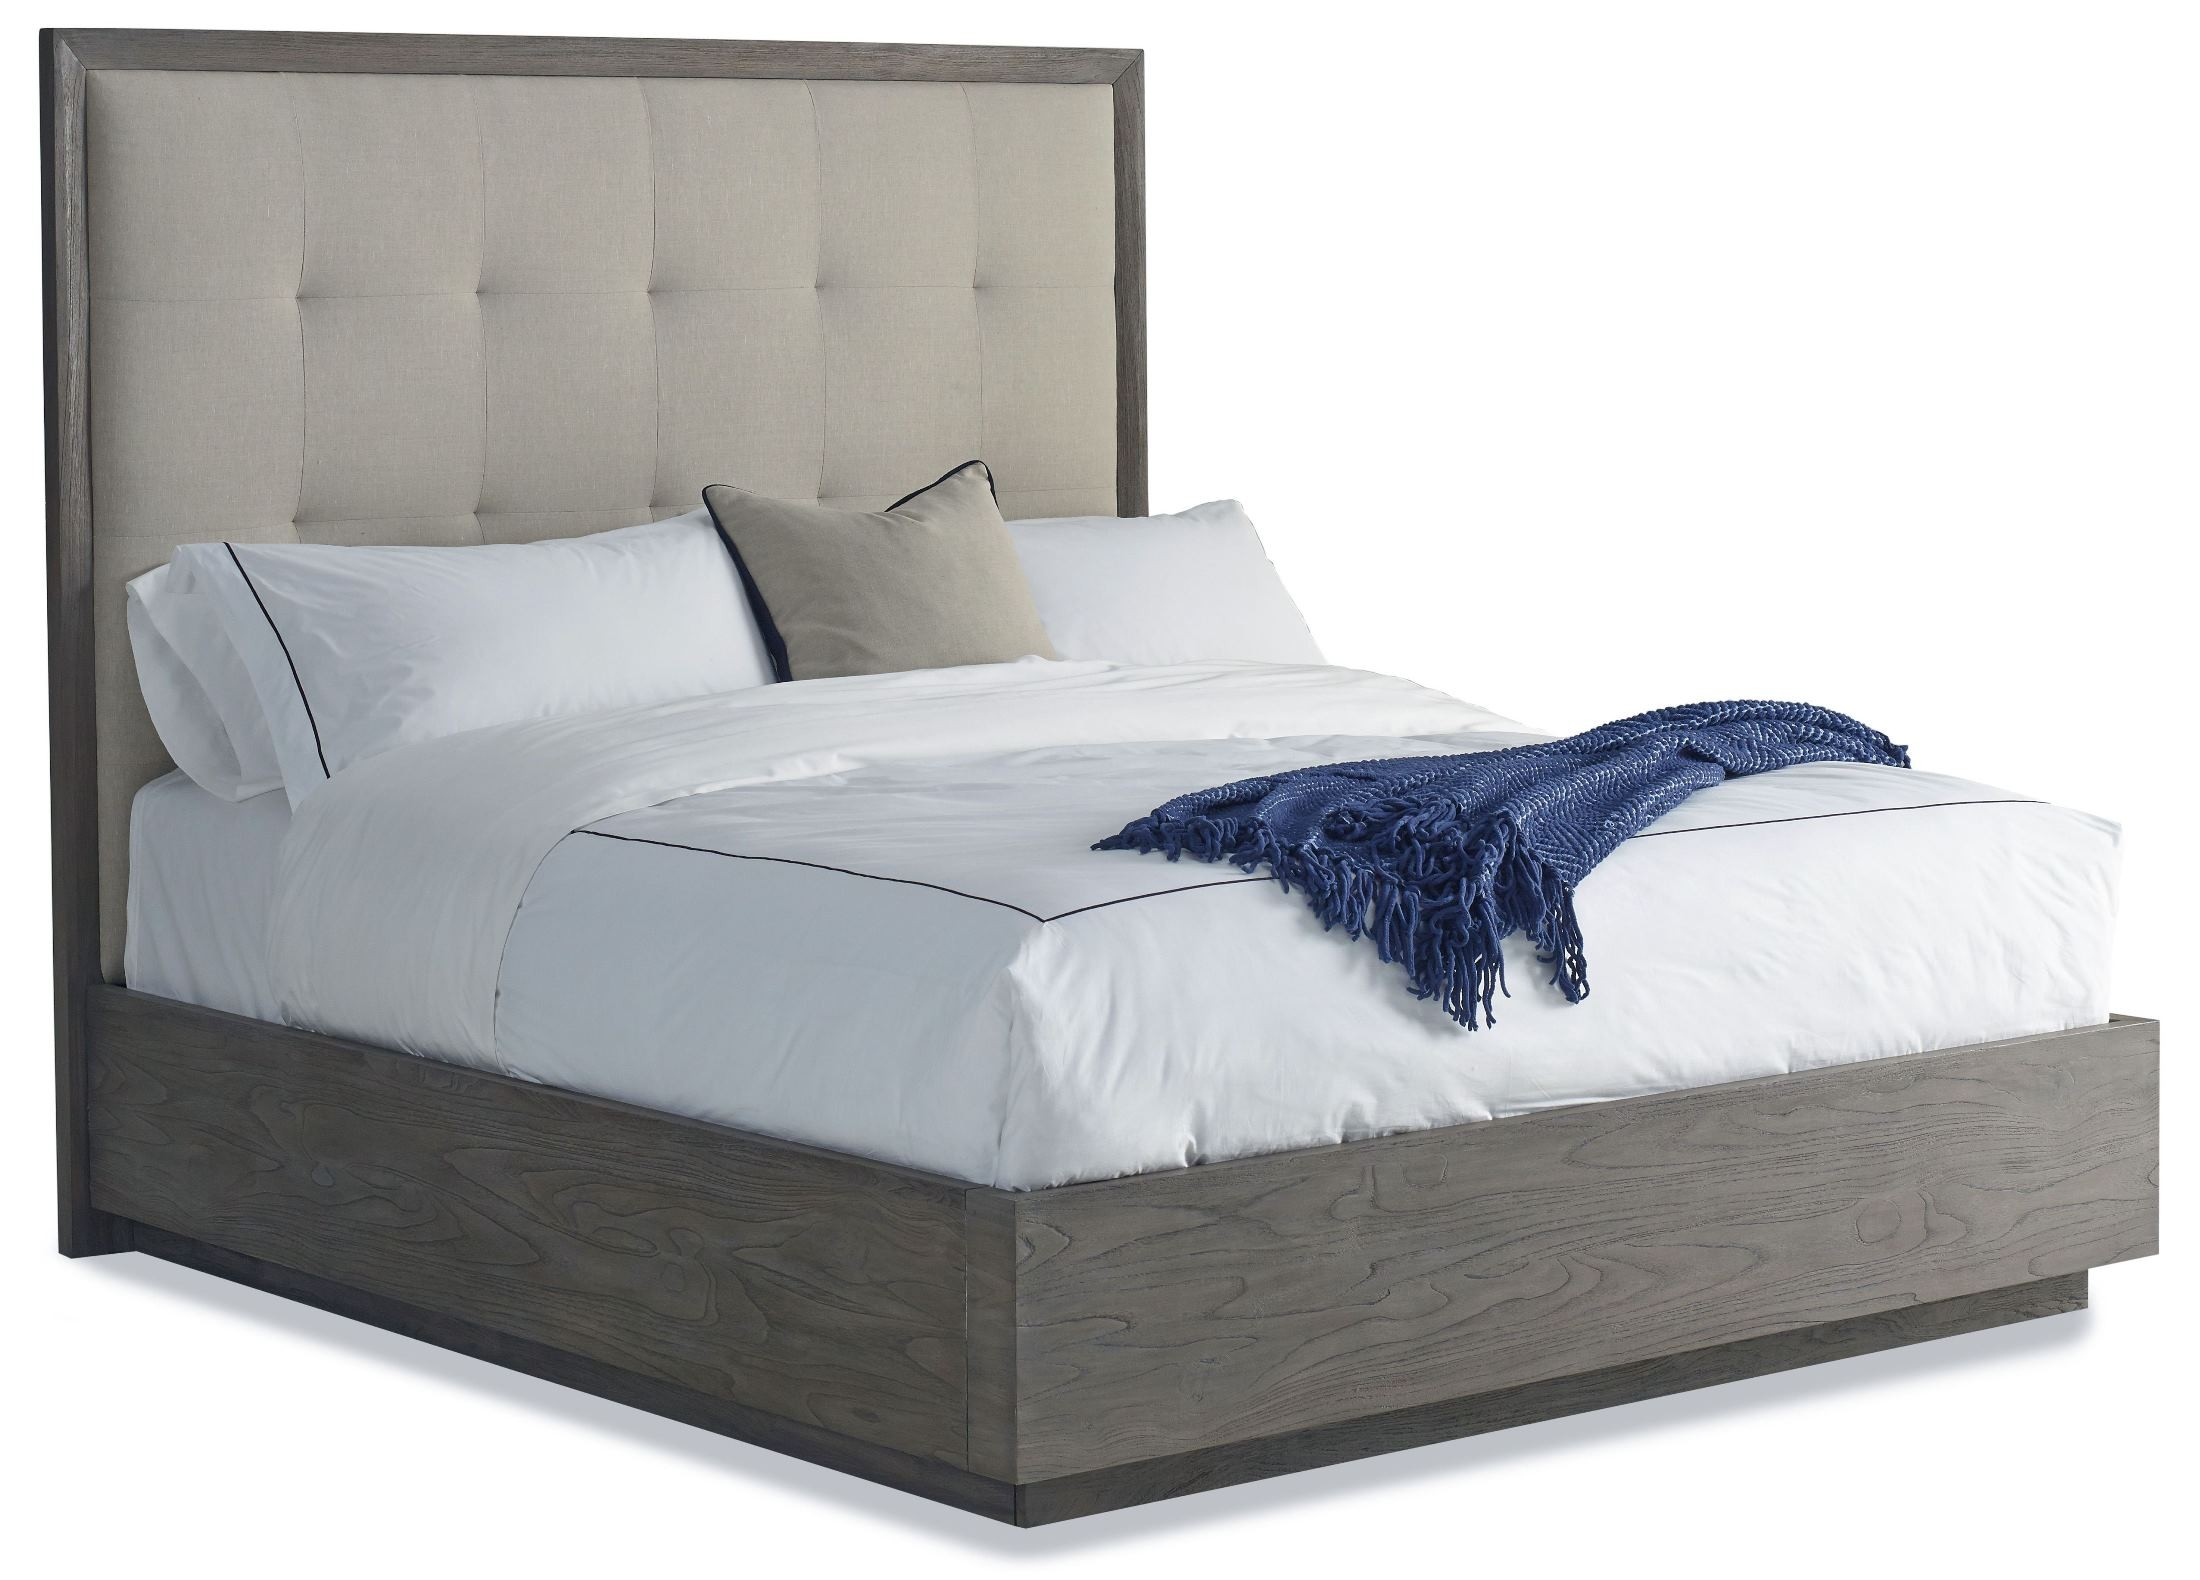 Palmer Queen Upholstered Platform Bed From Brownstone